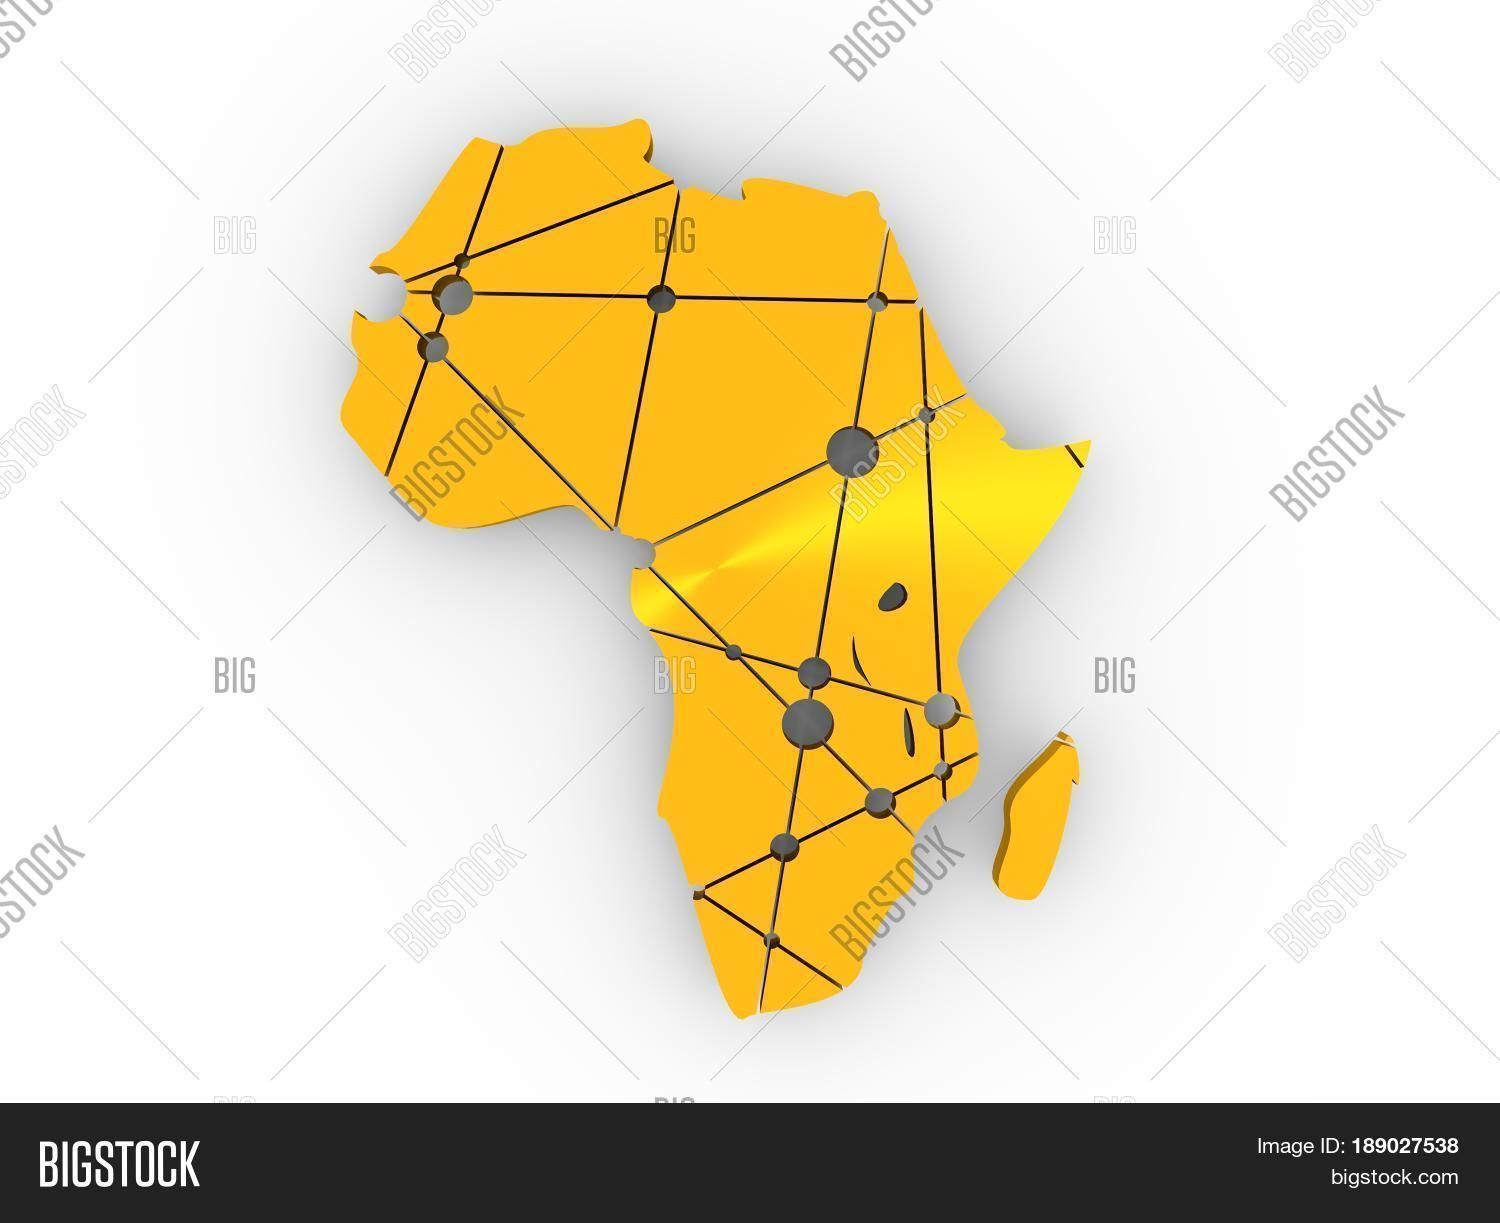 Low Poly Map Africa. Image & Photo (Free Trial) | Bigstock